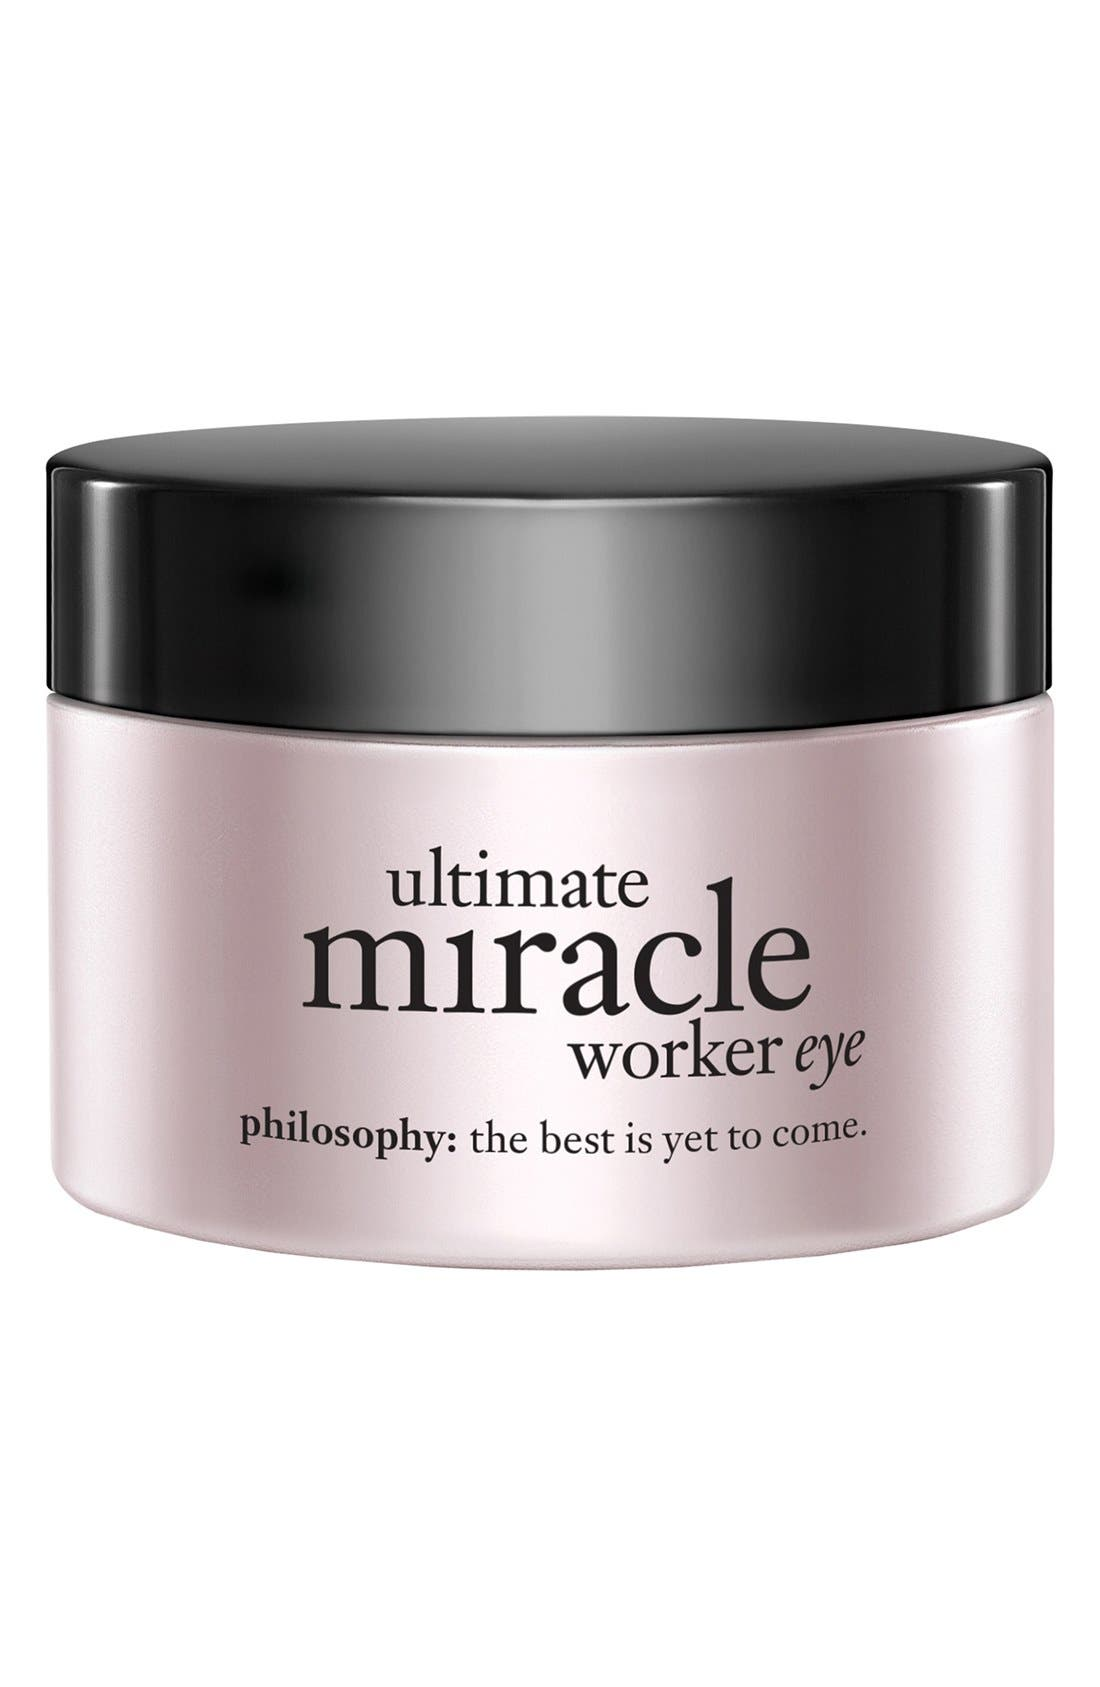 philosophy 'ultimate miracle worker eye' multi-rejuvenating eye cream broad spectrum SPF 15